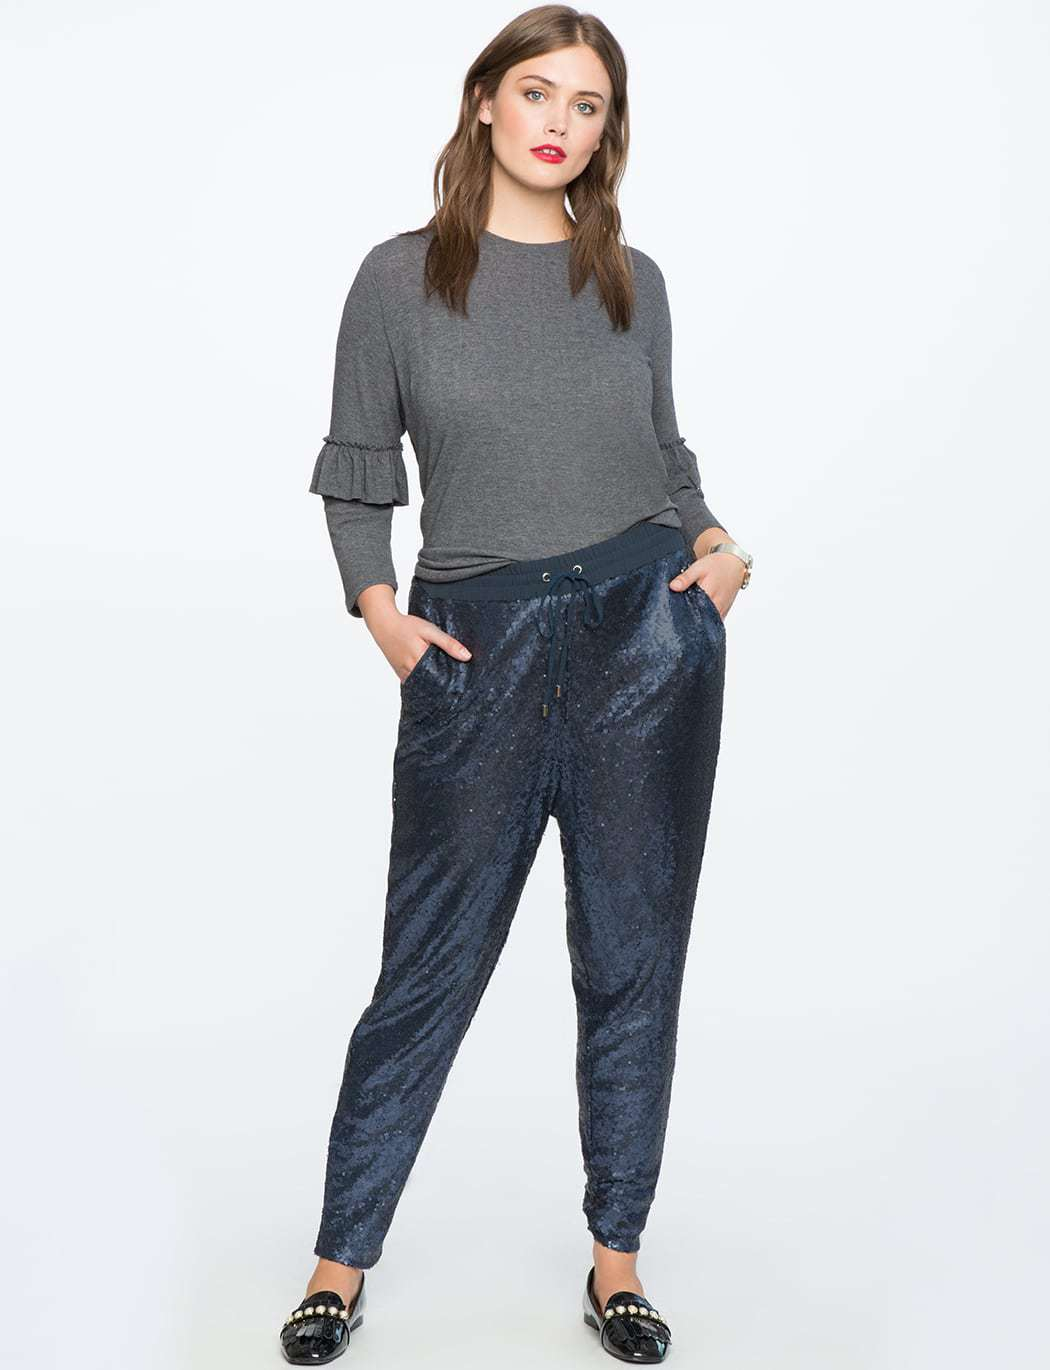 ELOQUII Review: Sequin Pull-on Pant